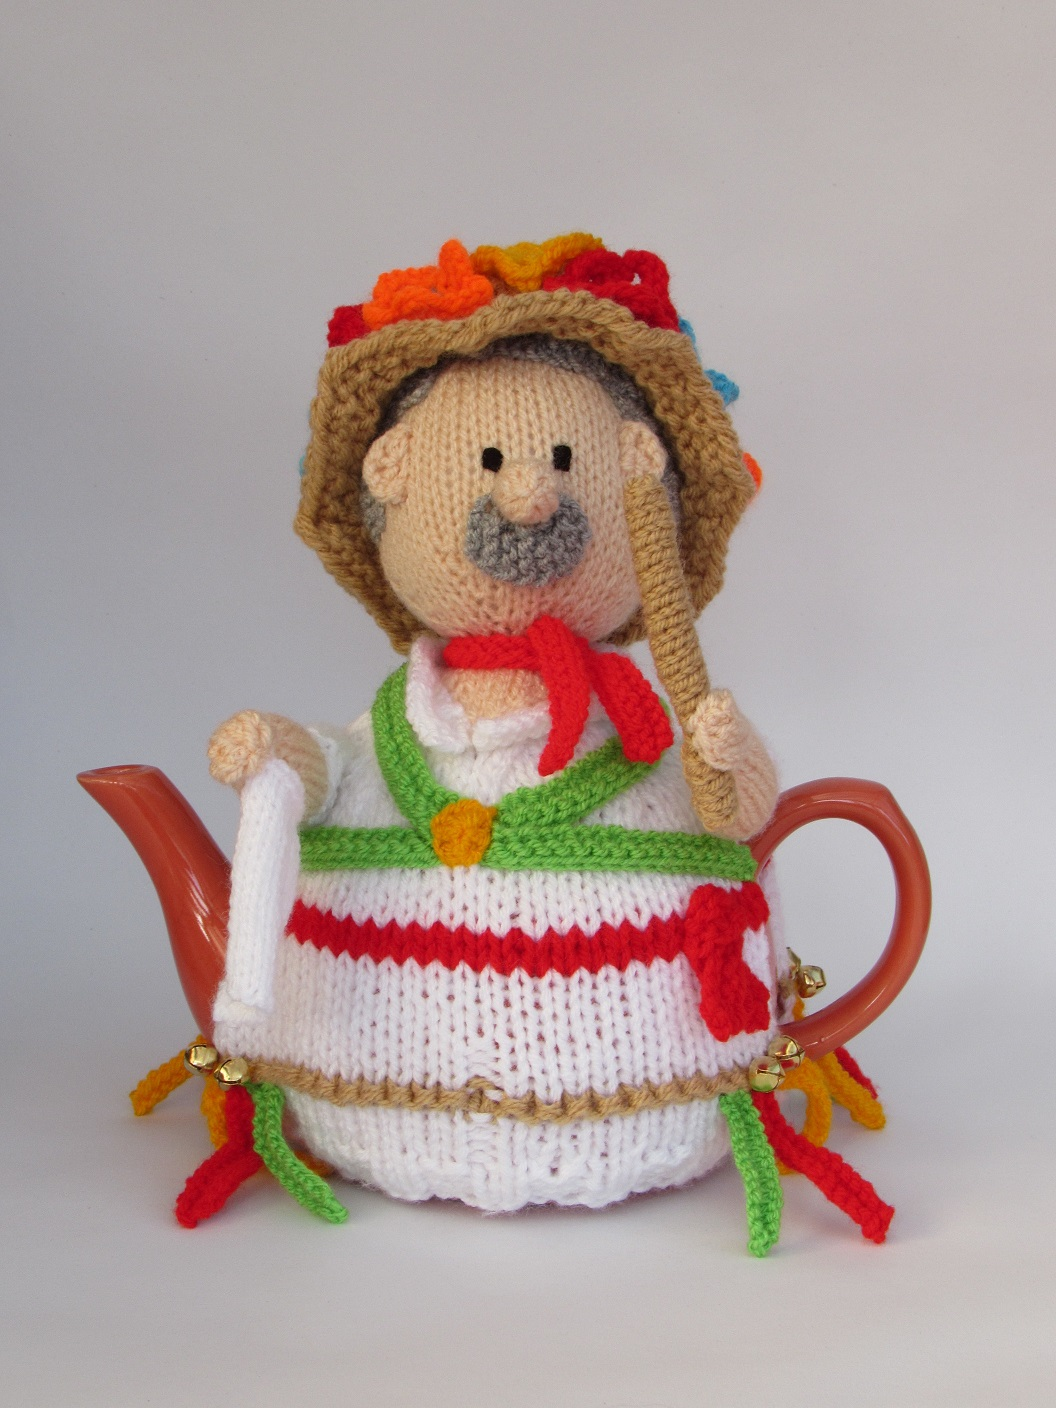 Tea Cosy Knitting Patterns From Tea Cosy Folk Learn How To Knit Our